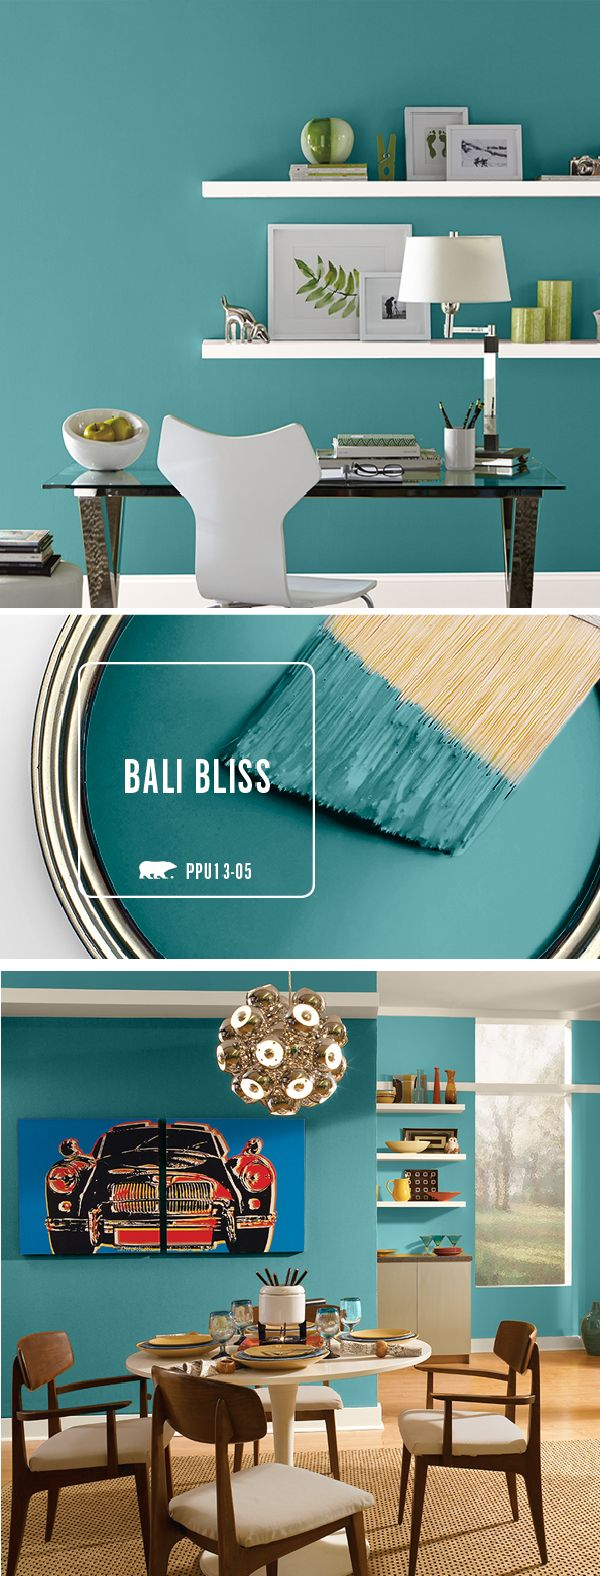 Relaxing Colors the 25+ best teal paint colors ideas on pinterest | teal paint